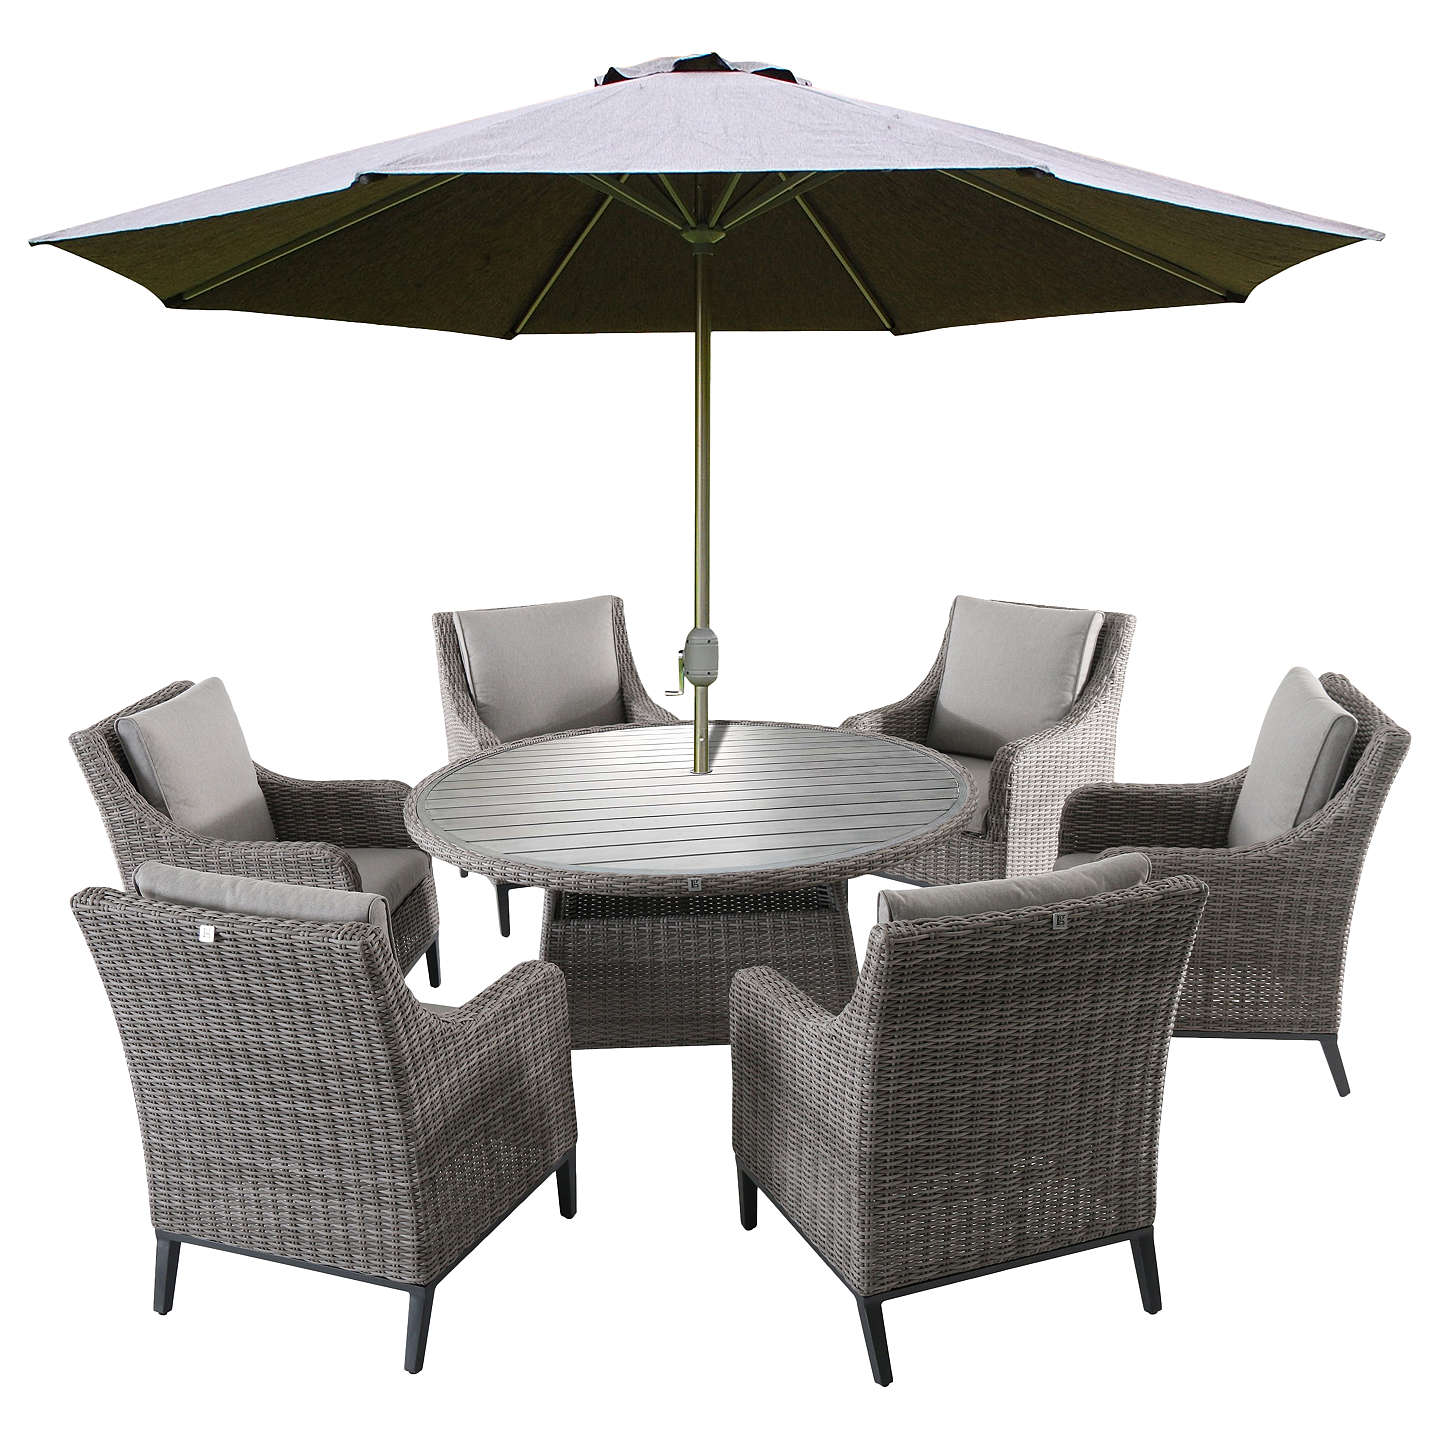 Lg Outdoor Copenhagen 6 Seater Garden Dining Table And Chairs Set With Parasol Online At Johnlewis